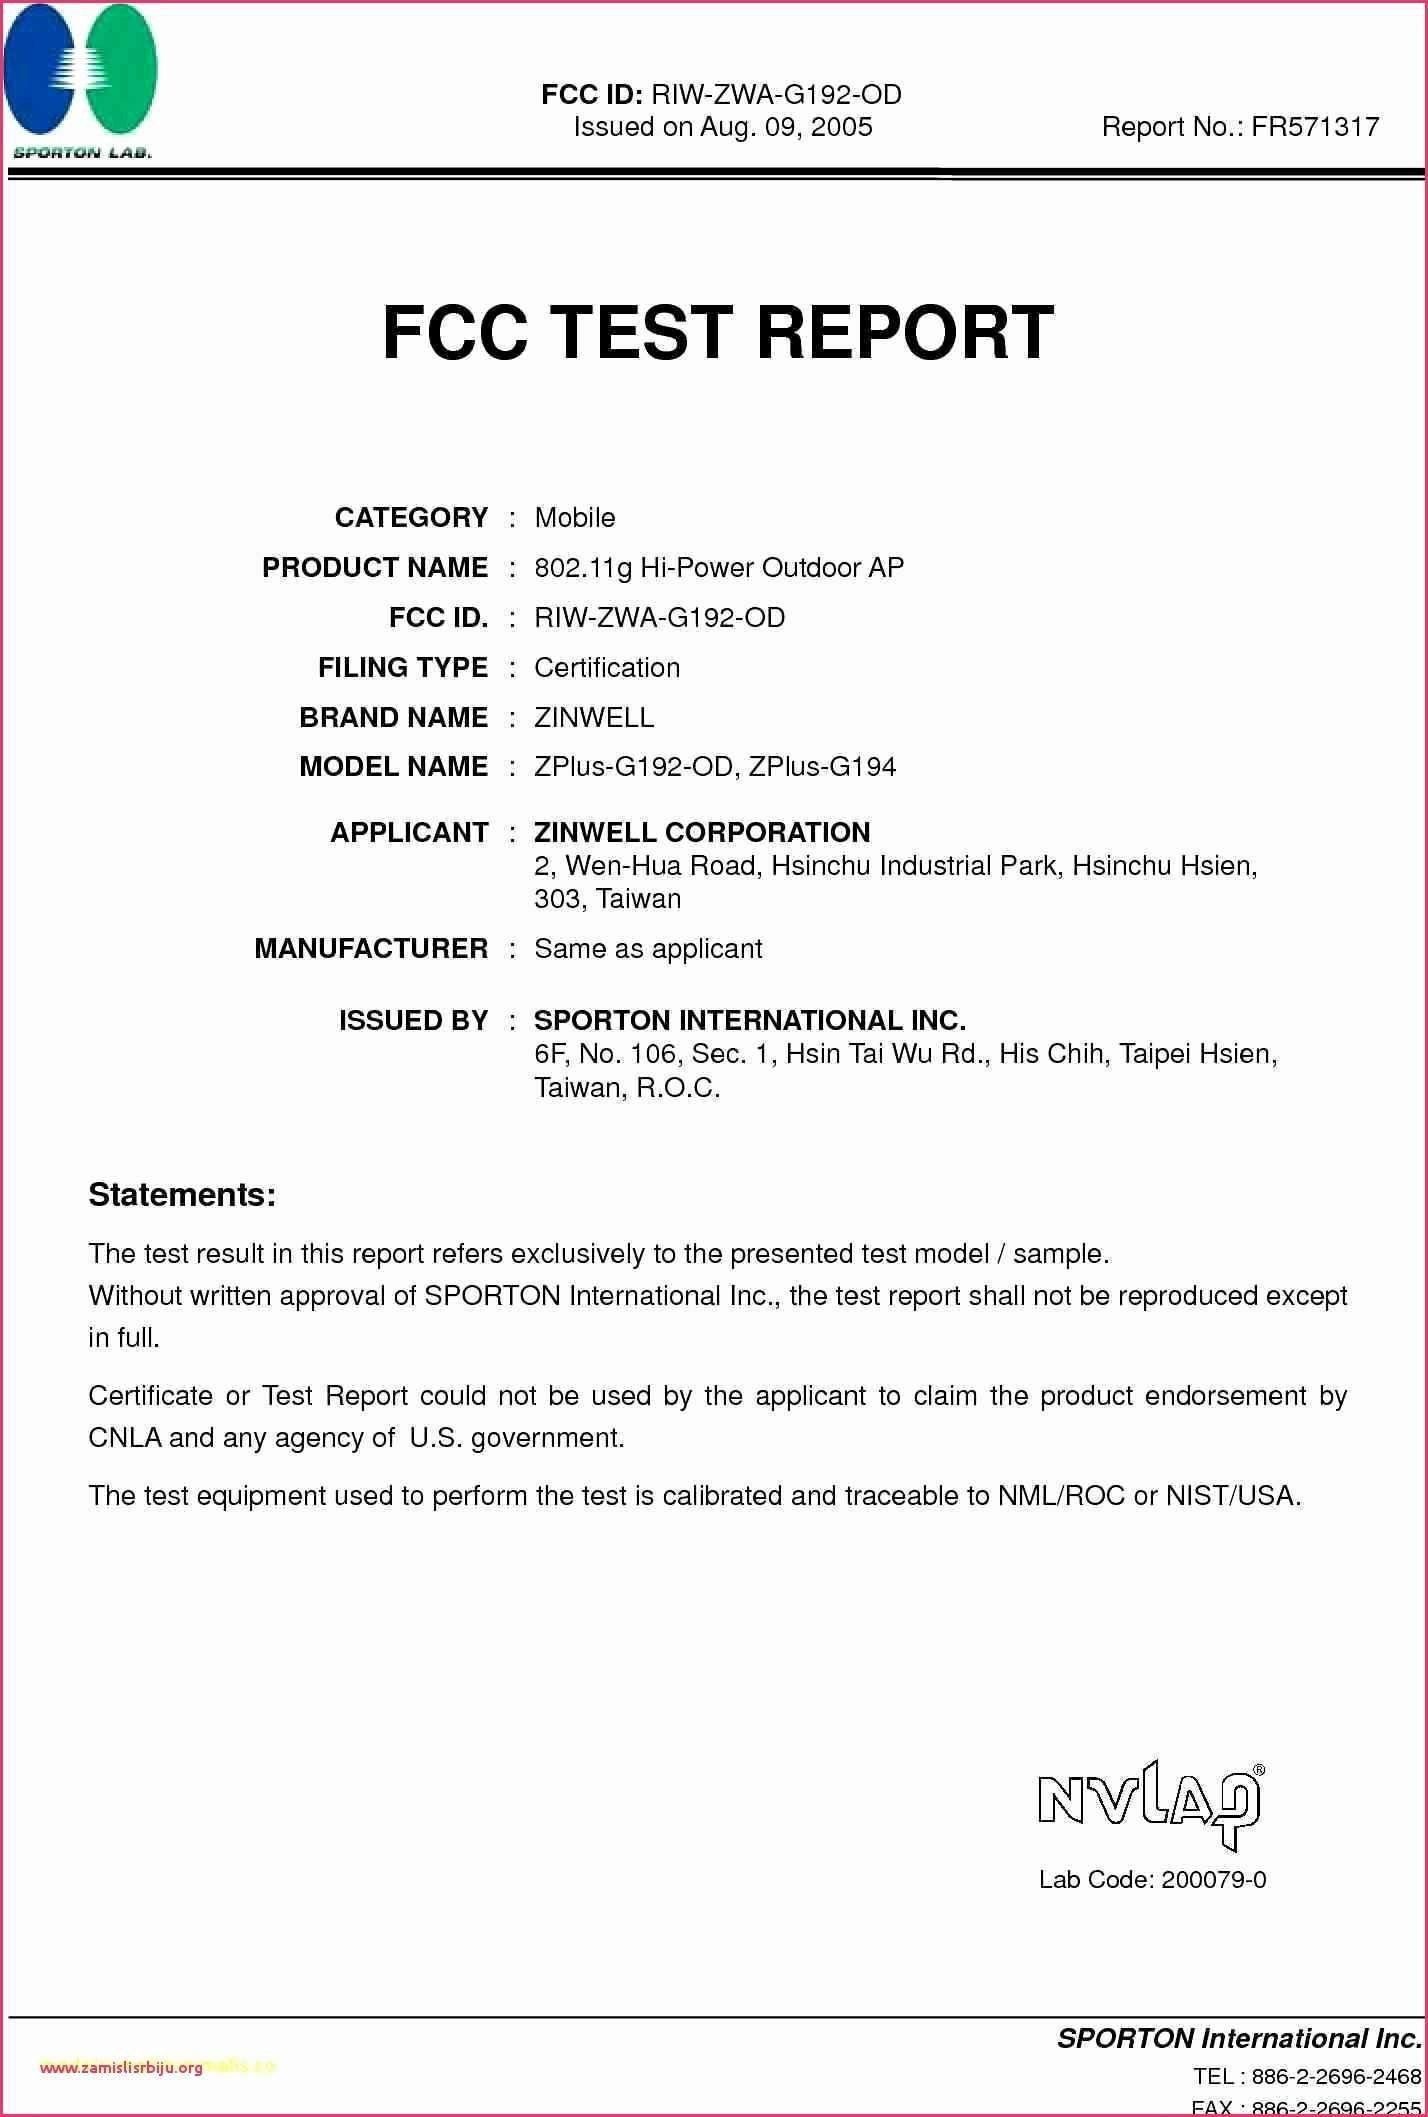 32 Lovely Electrical Engineering Resume No Experience in